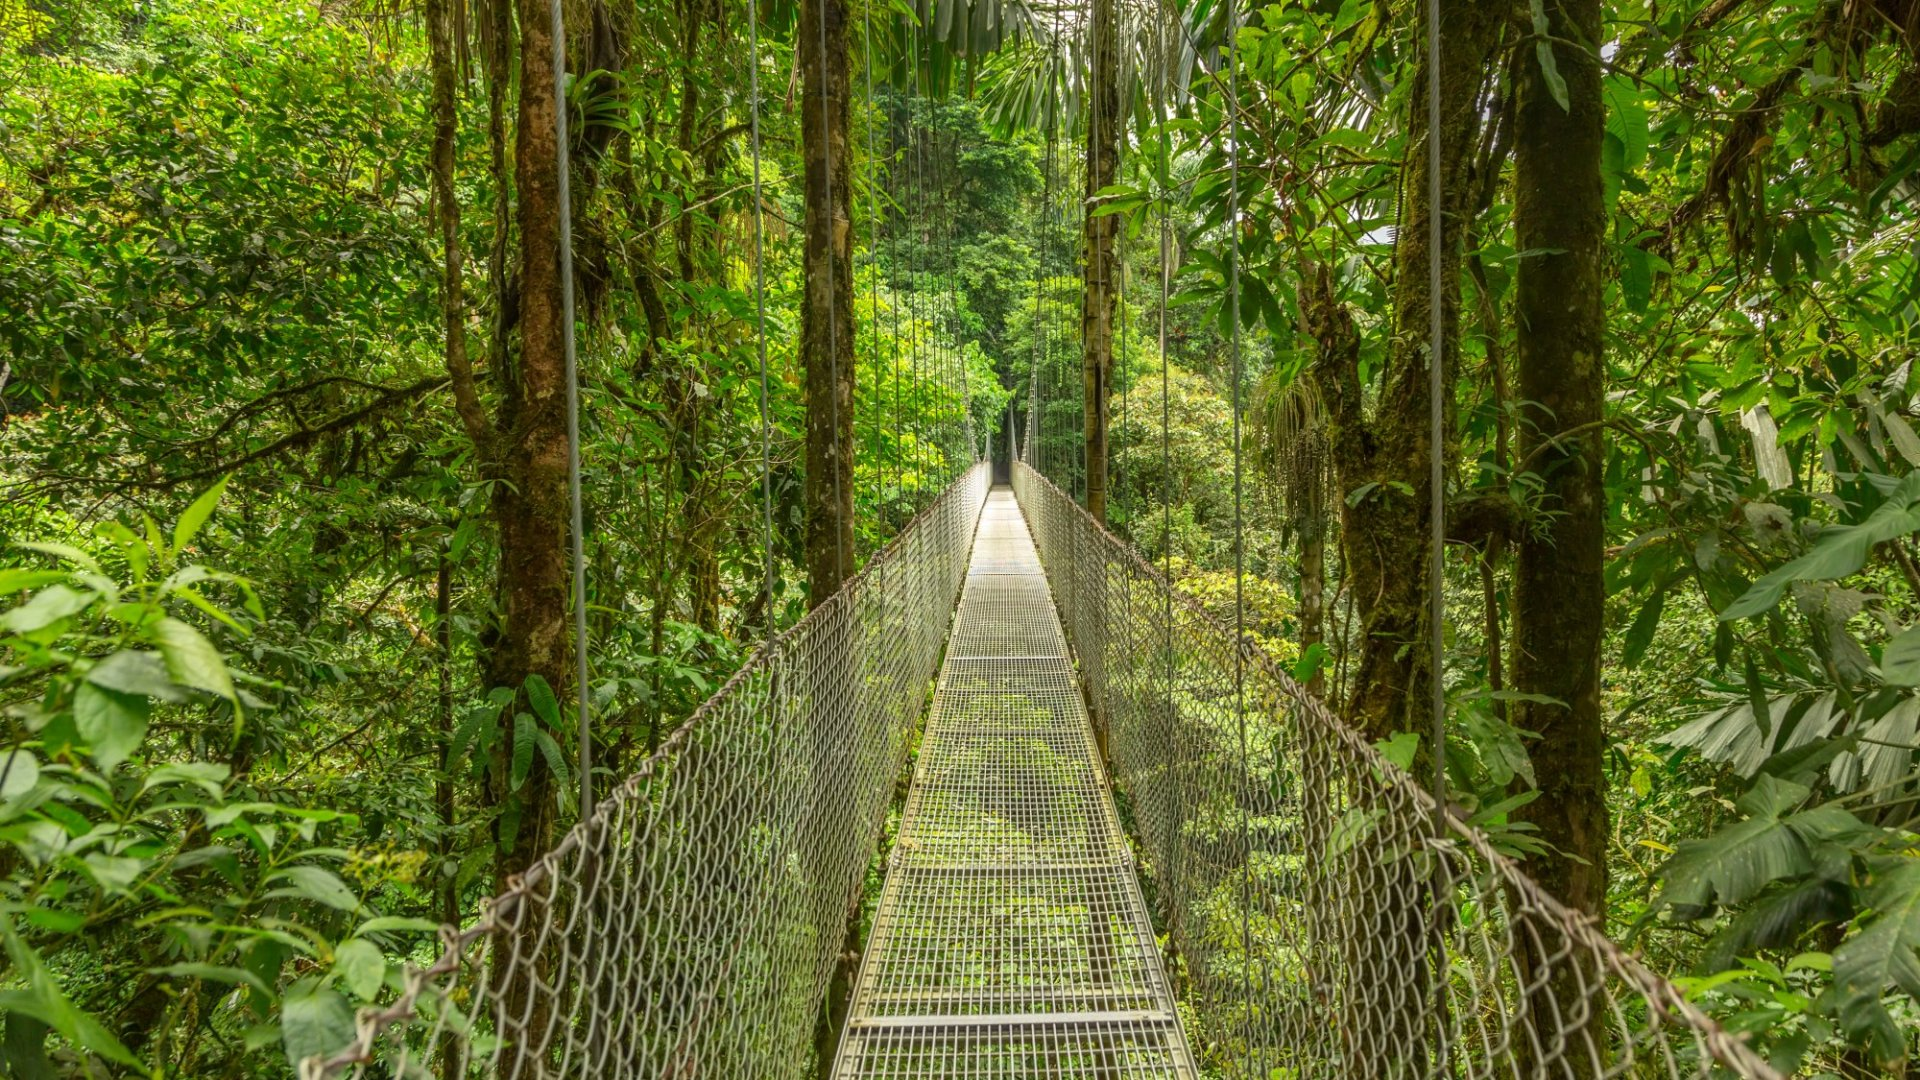 7 Entrepreneurial Lessons Gleaned from a Costa Rican Adventure